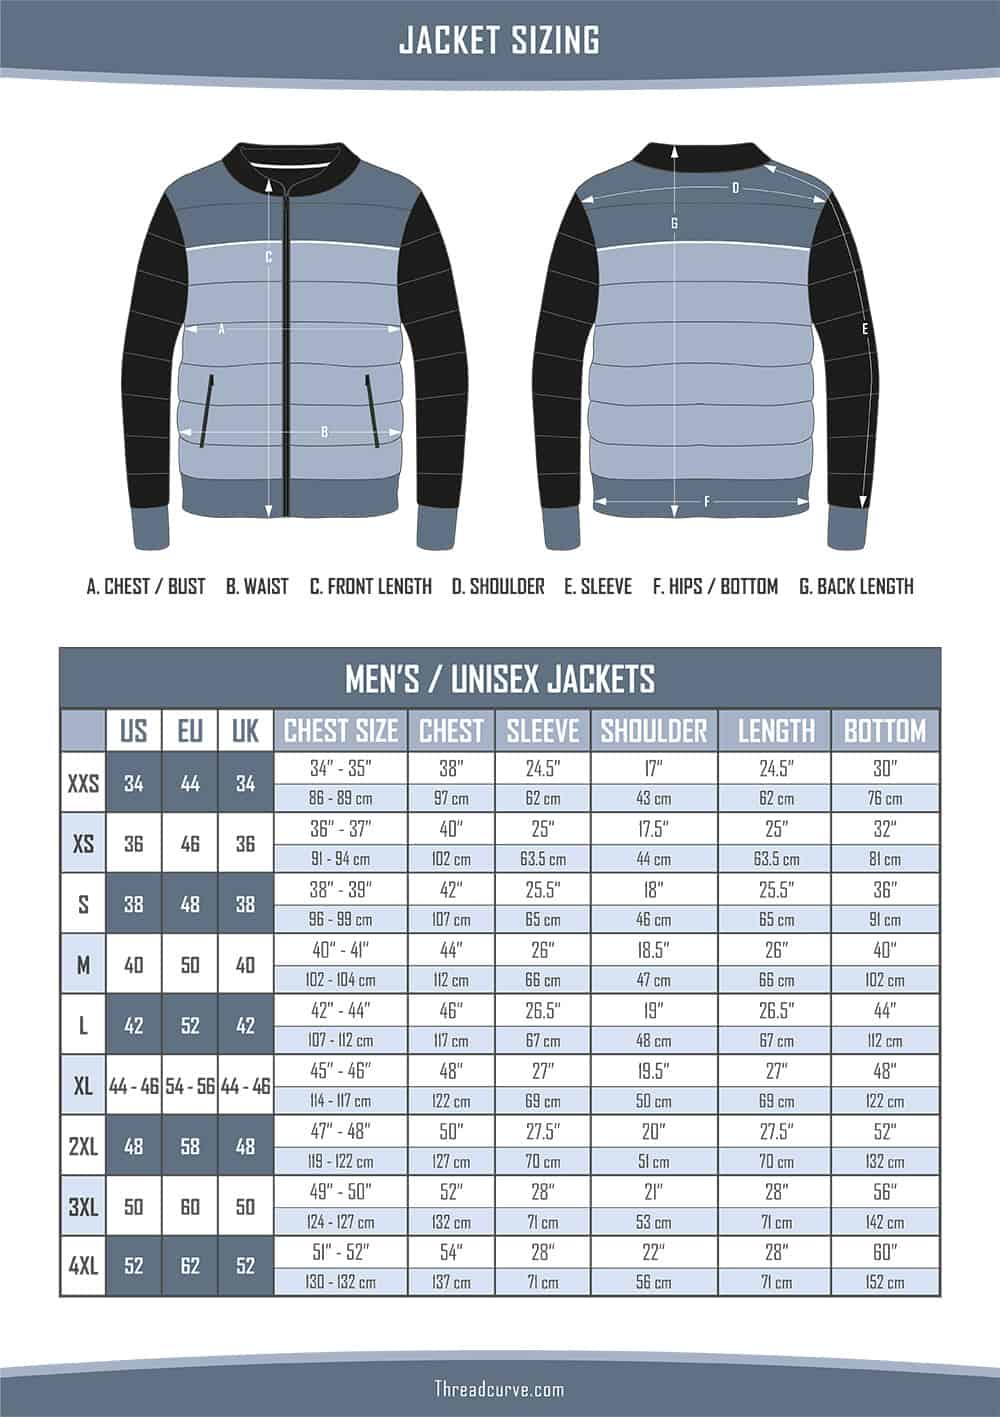 This is the chart for Men's and Unisex Jackets Sizes.